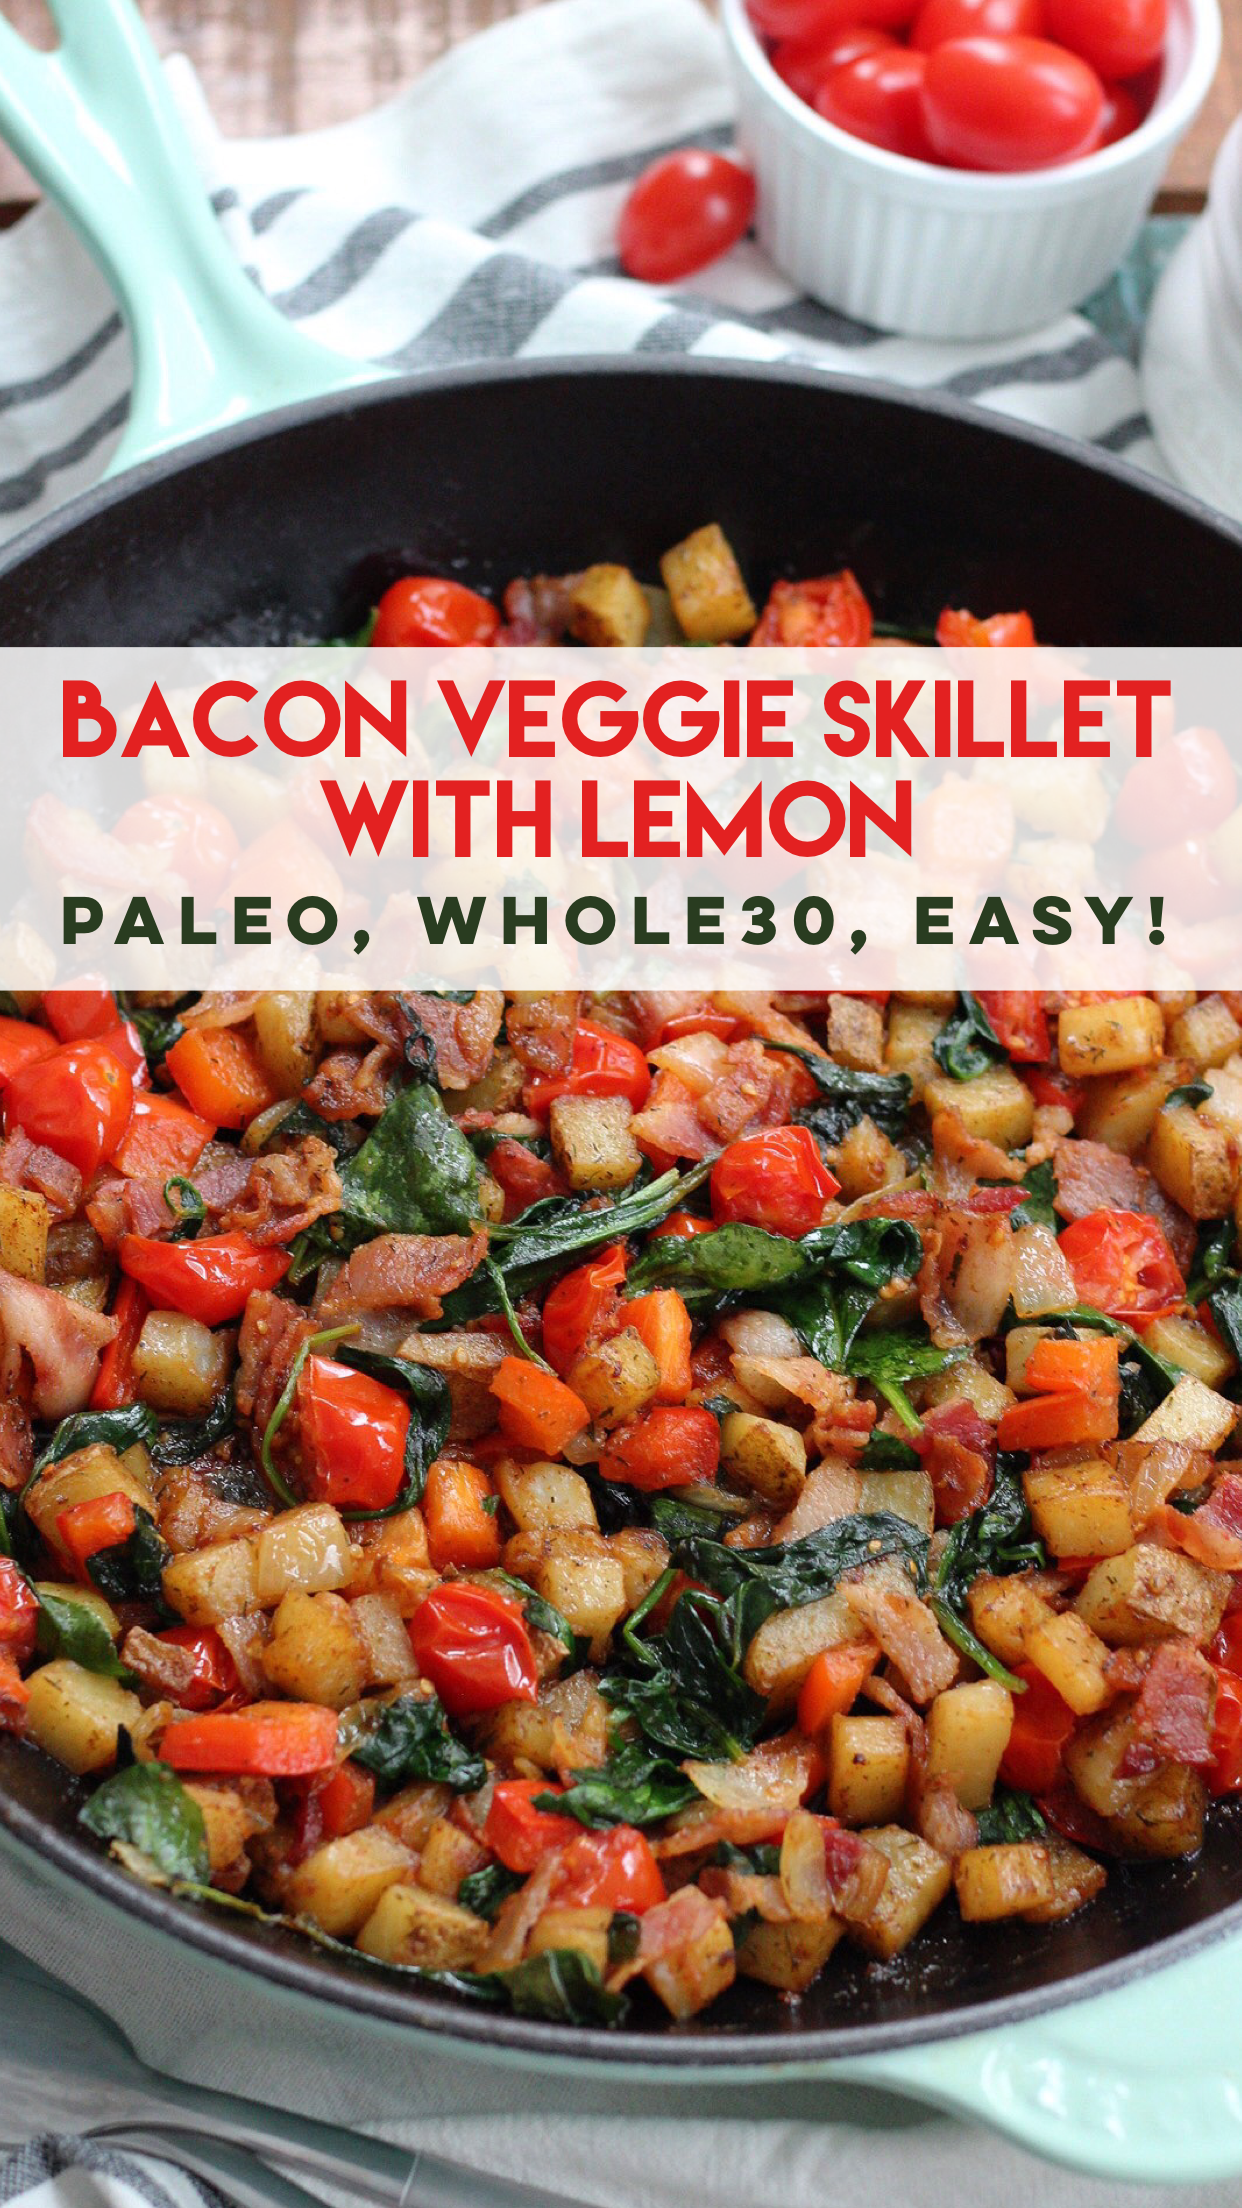 Bacon and Veggie Egg-Free Paleo Breakfast Skillet: Paleo, Whole30, Easy Meal Prep. Perfect egg free breakfast if you can't stand to look at another egg on your Whole30. It's a family friendly breakfast recipe that takes less than 20 minutes! #whole30breakfast #eggfreebreakfast #paleobreakfast via @paleobailey